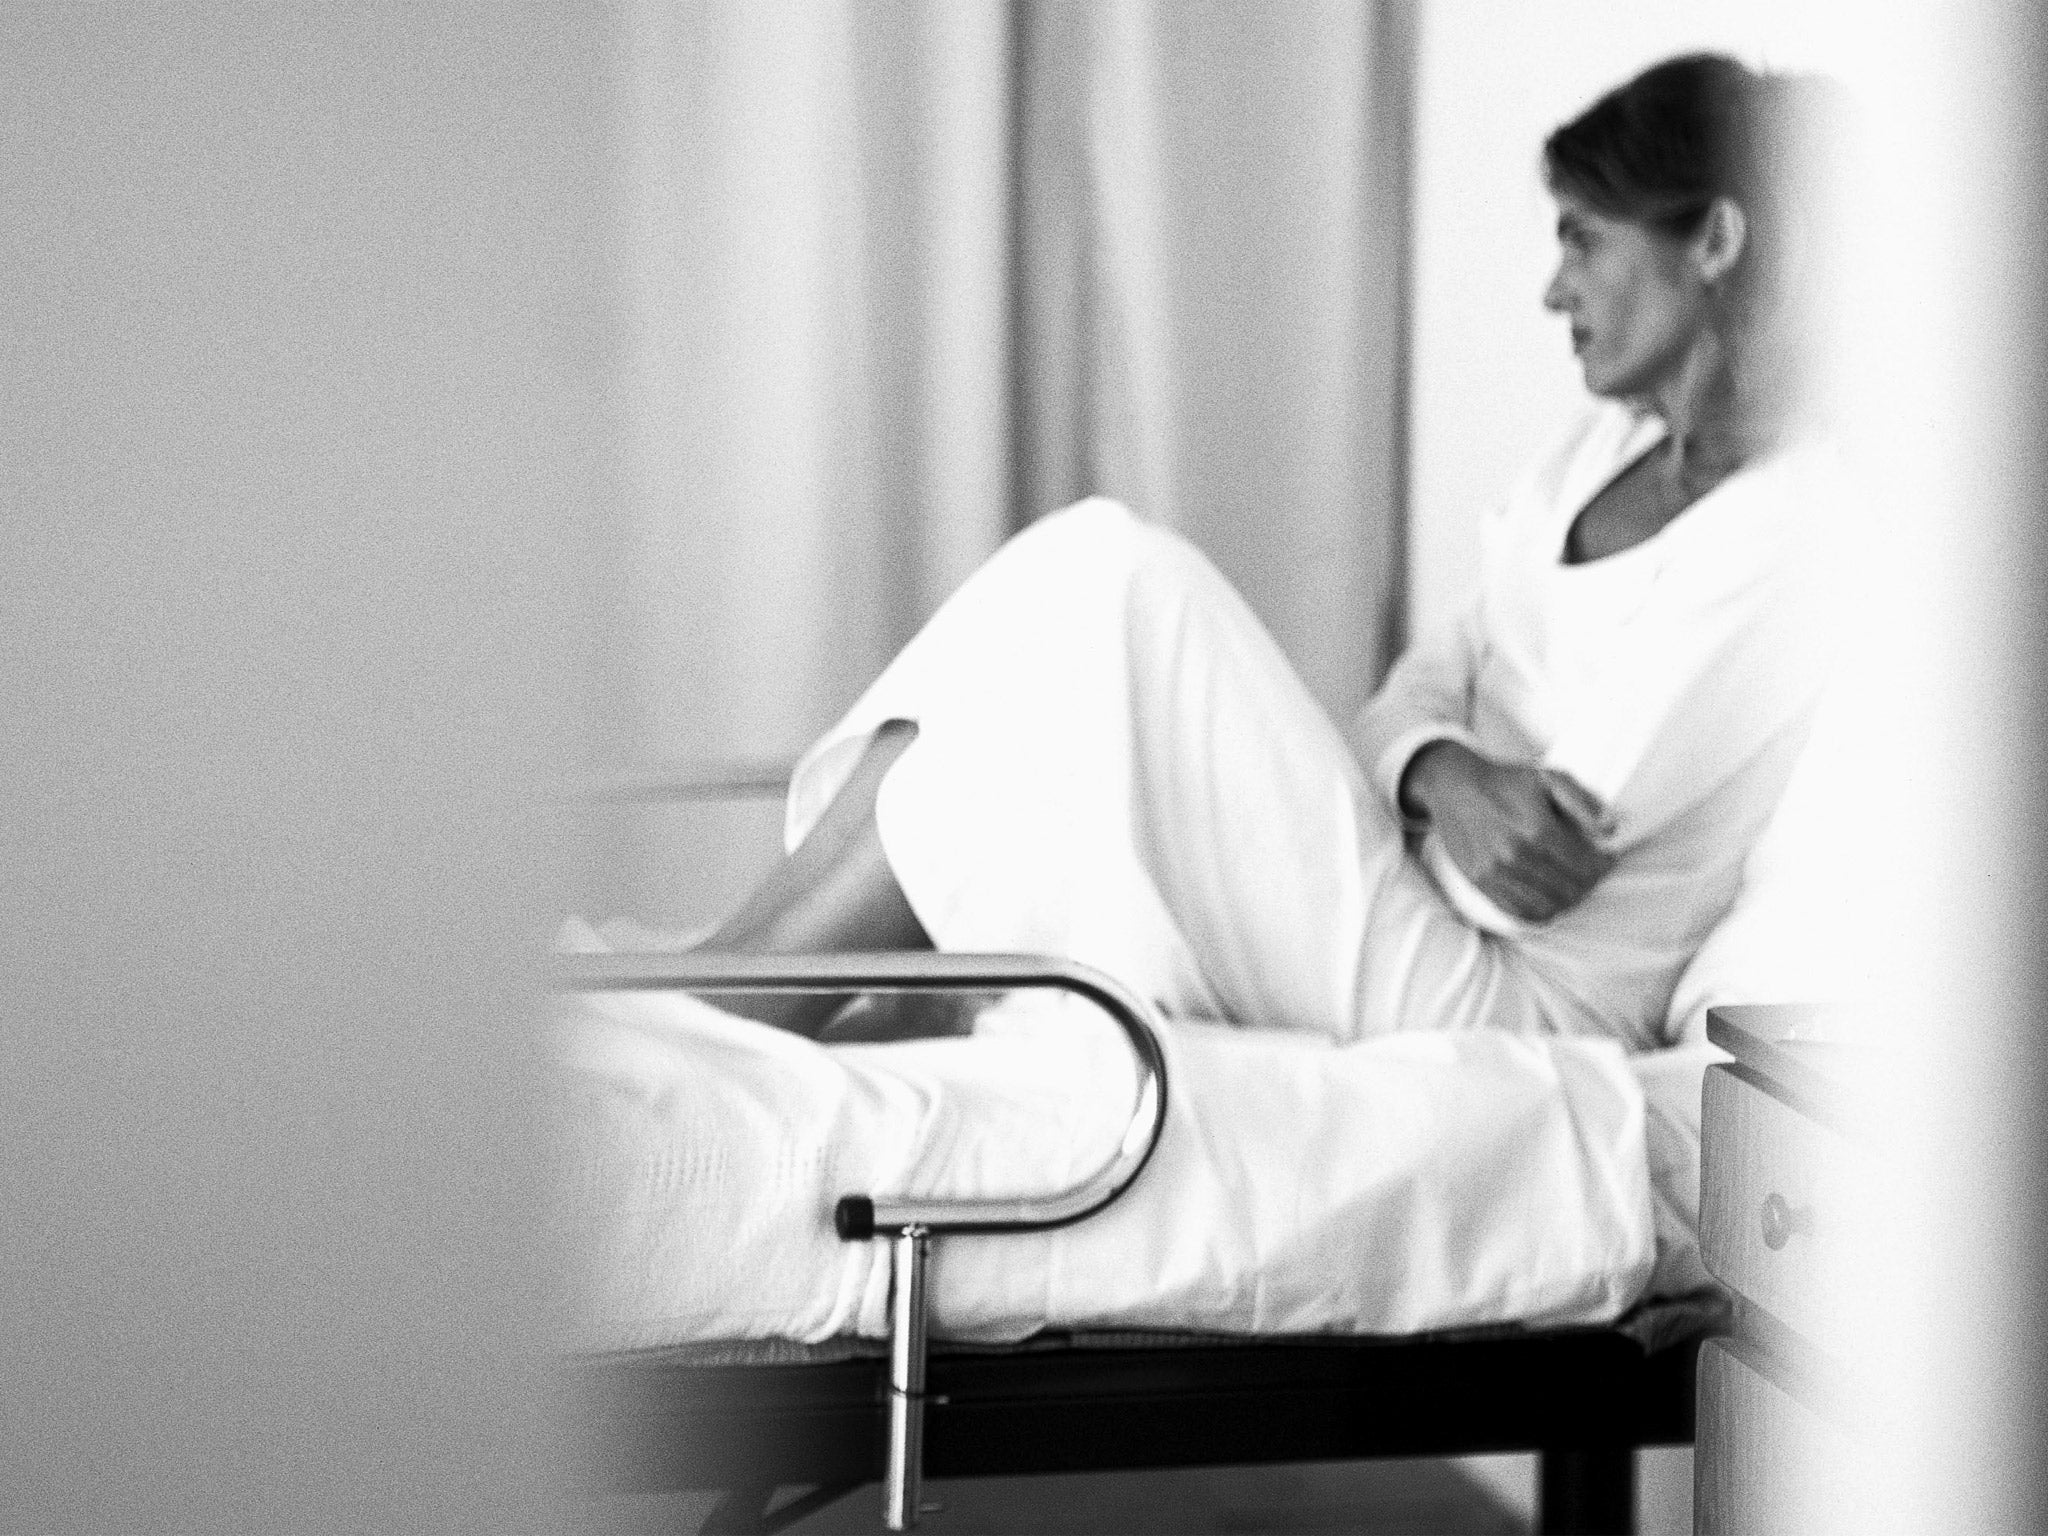 Mentally Ill Patients Sectioned Unnecessarily As Only Way